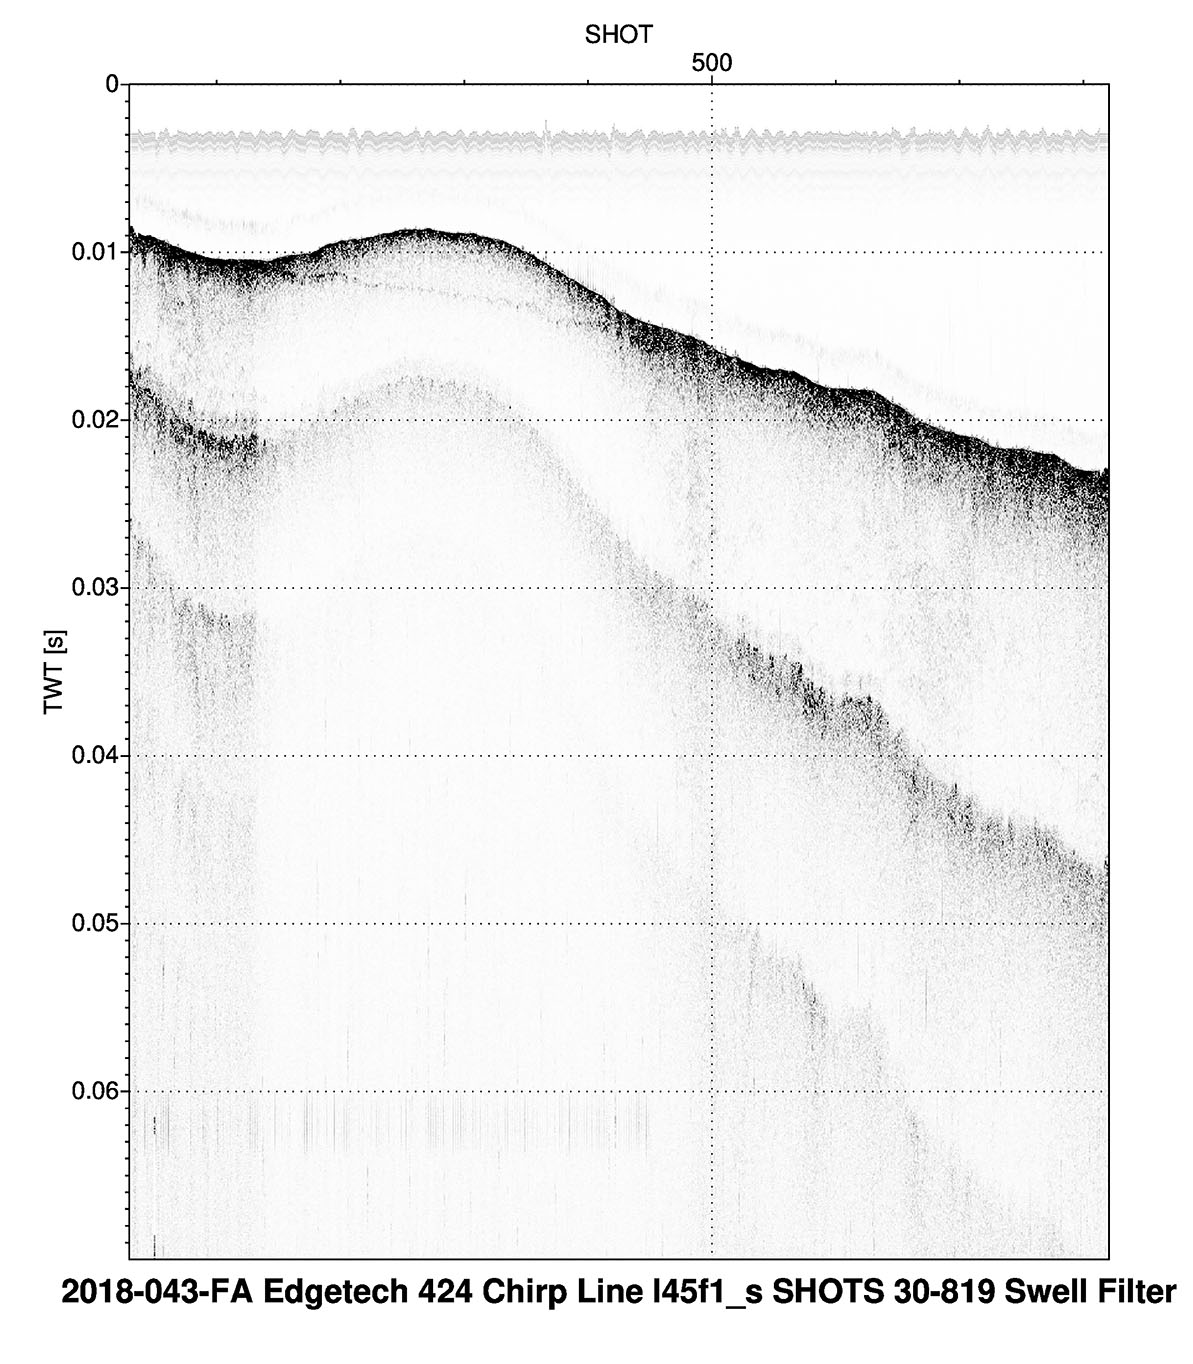 Thumbnail image of chirp seismic-reflection profile example from Lake Superior, Michigan.